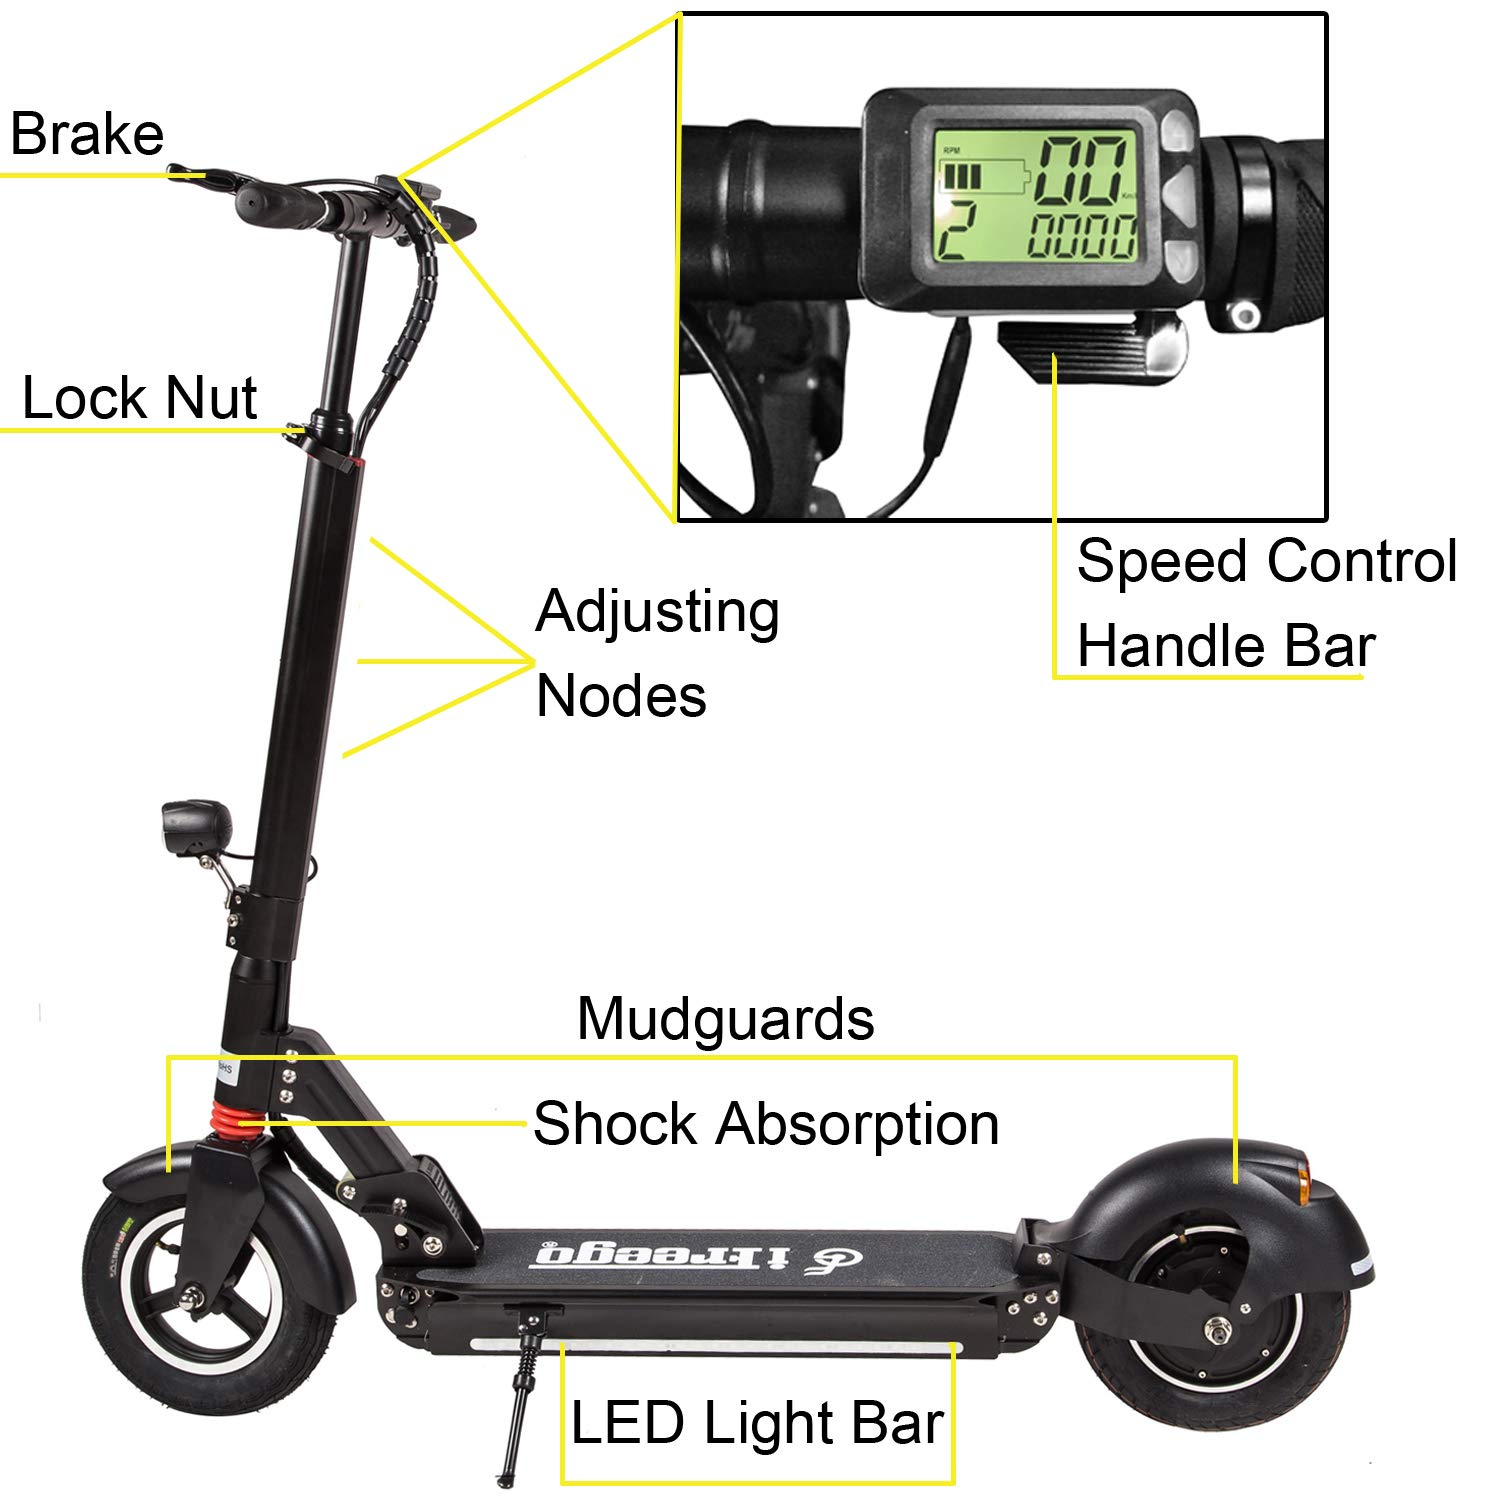 Freego 10 Inch Folding Electric Kick Scooter 3 Block Basic Wiring Diagram Speed Height And Double Shock Absorption Sports Outdoors